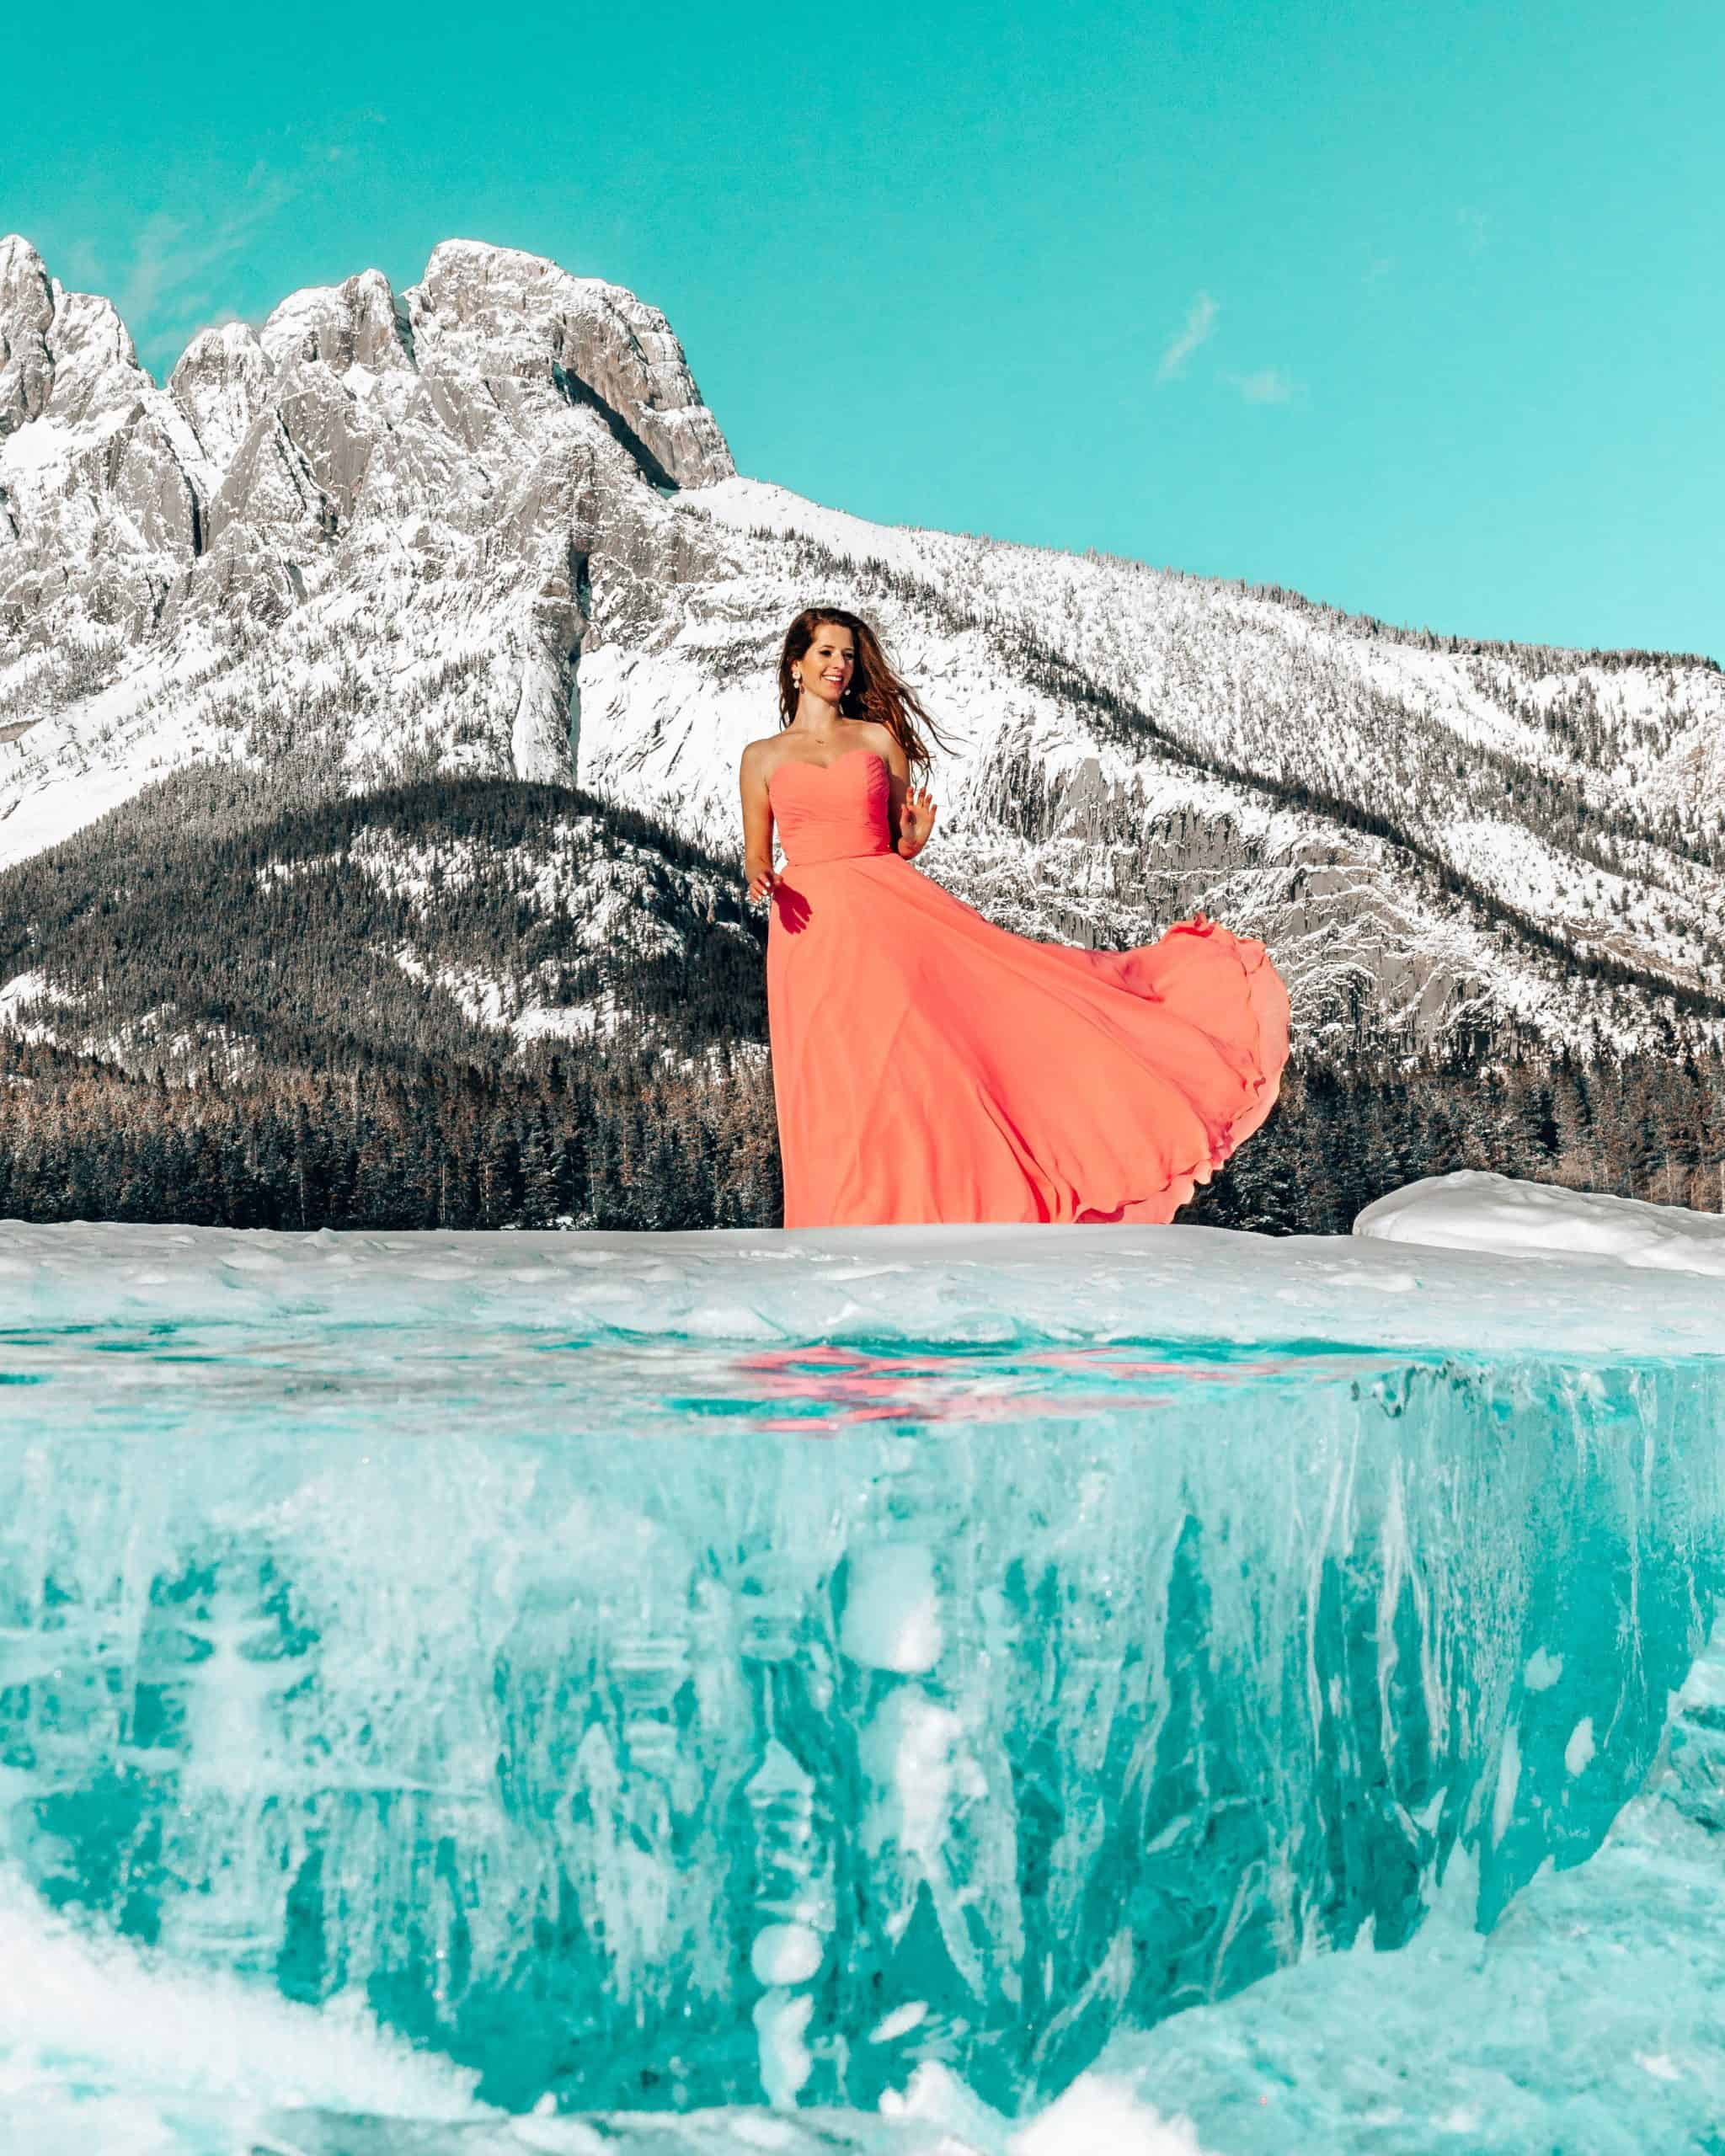 Bettina at Abraham Lake - Best Things to do in Jasper in Winter